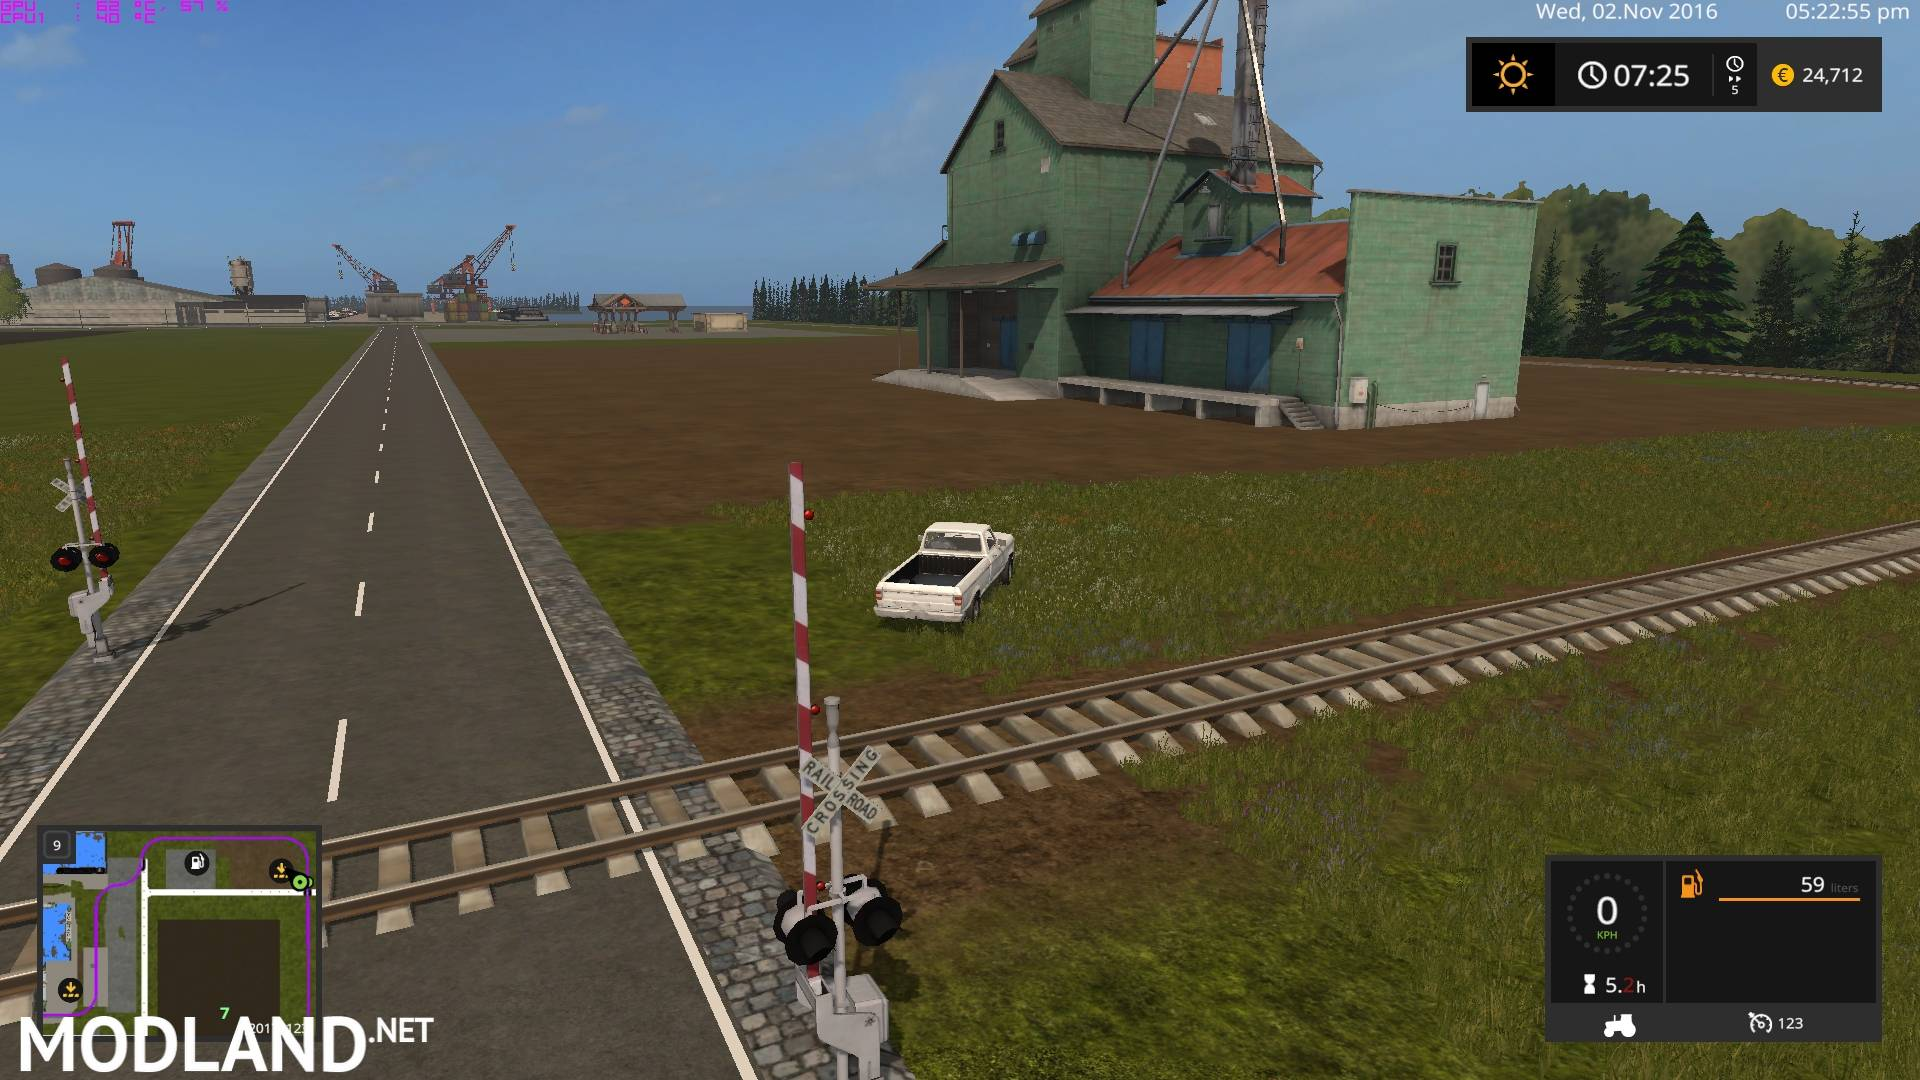 best free helicopter simulator with Fs 17 Canadian National Map on 3720 Fsx Westland Lynx Sh14 D Royal  herlands Navy further P2 besides Traveling Dubai Metro furthermore Fs 17 Canadian National Map together with 2451 Fsx Queenstown South Africa.